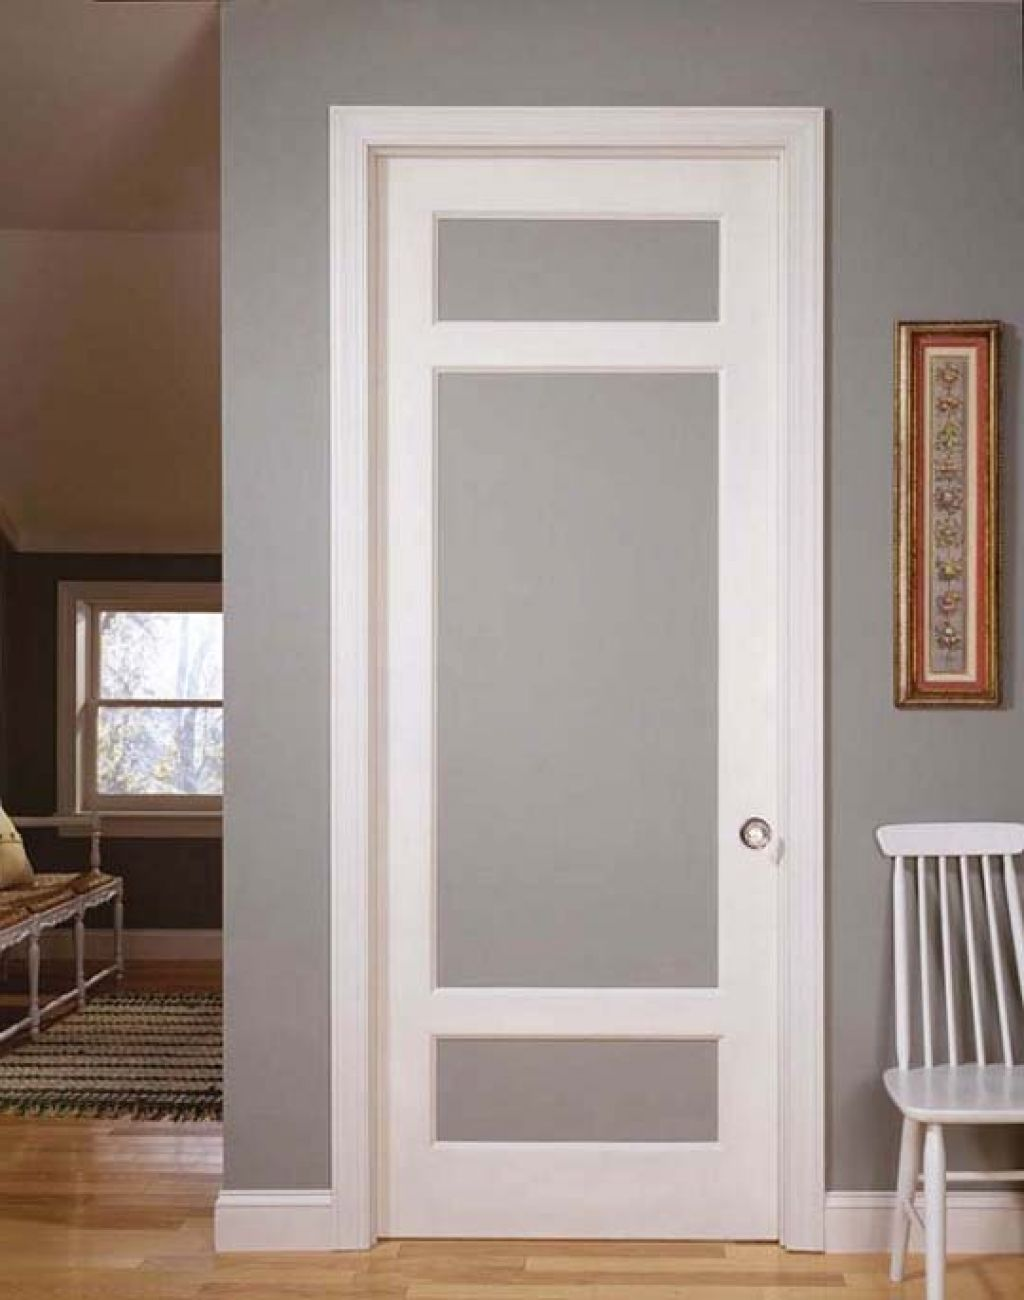 French doors interior frosted glass